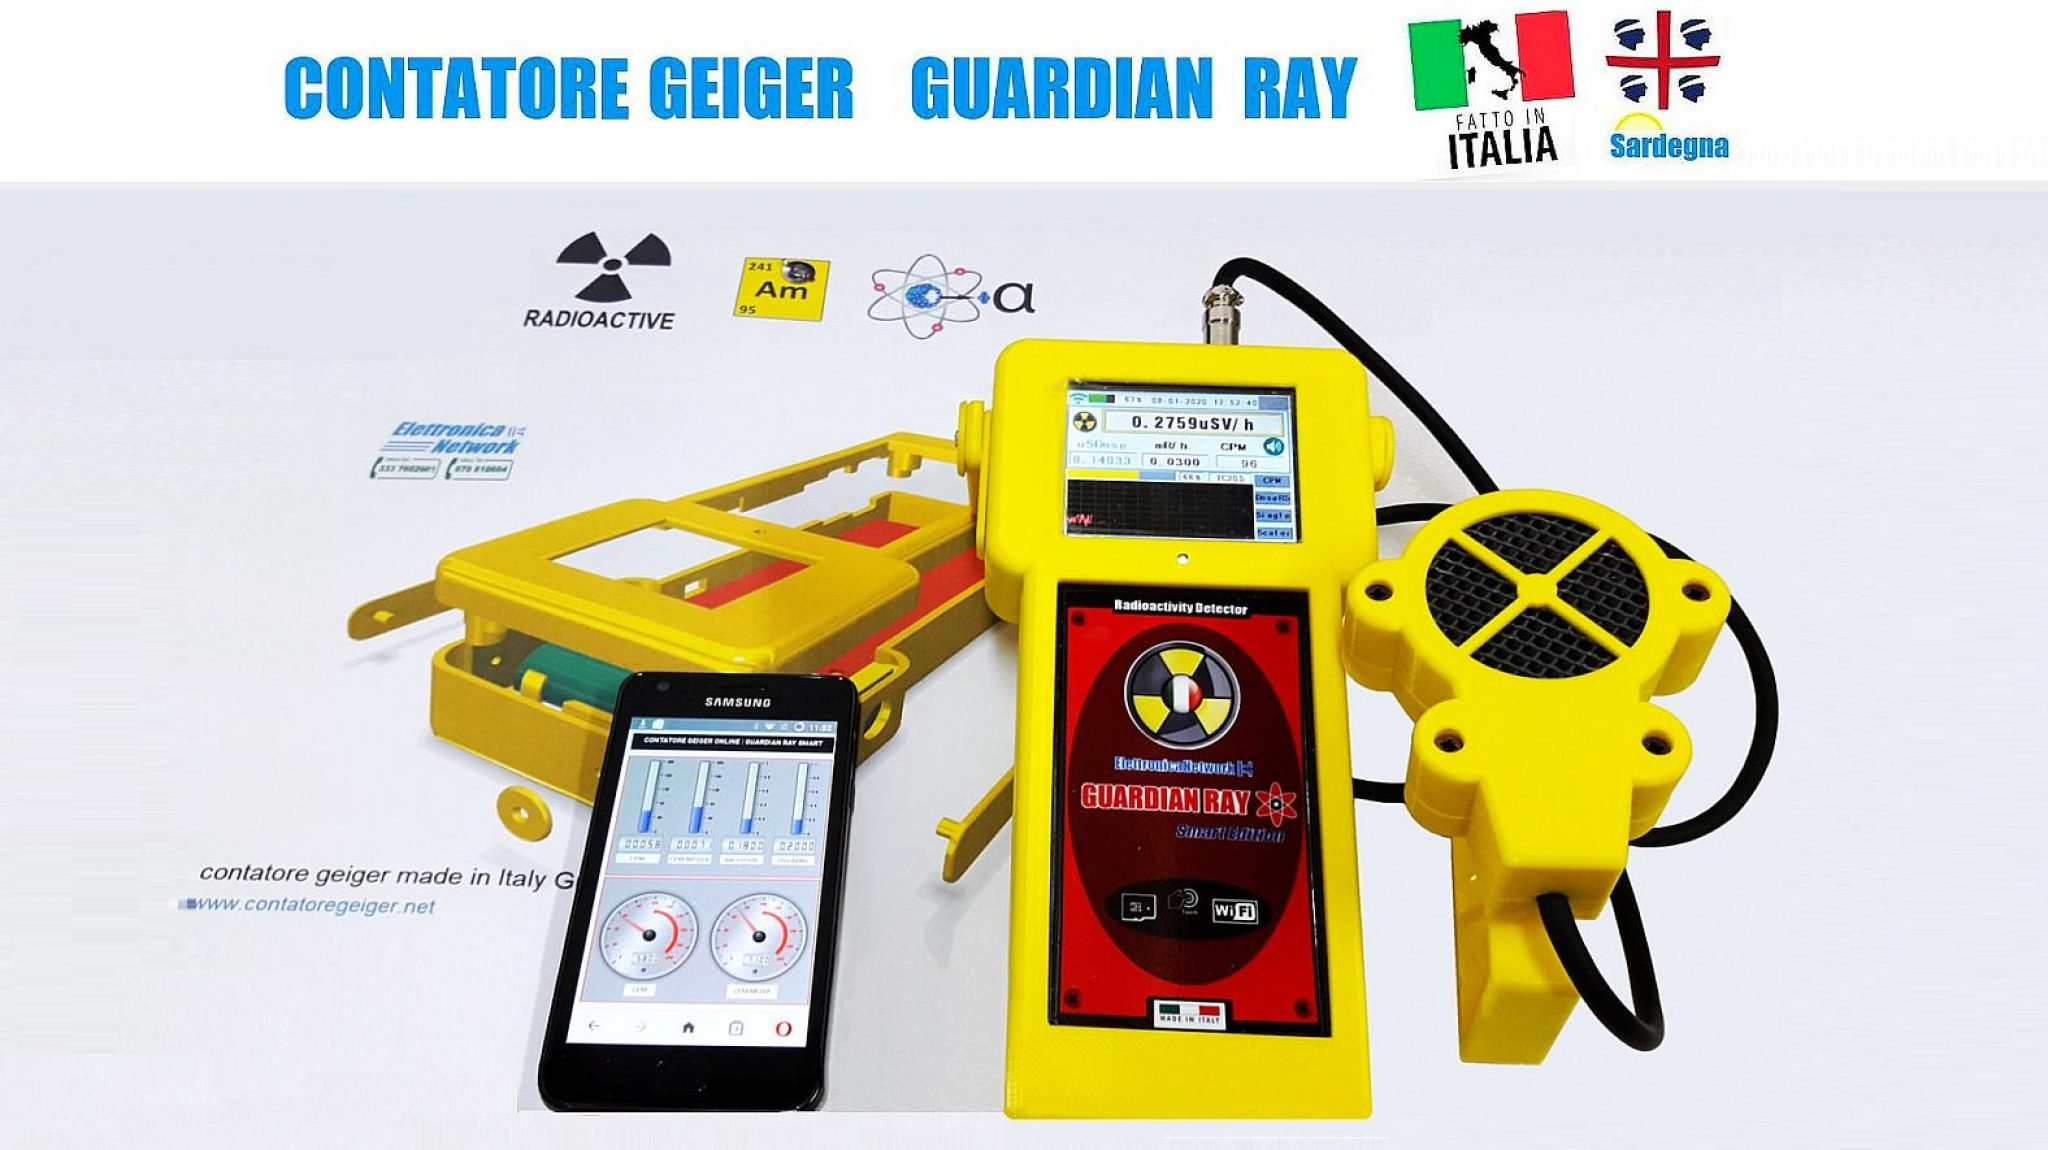 ElettronicaNetwork Contatori Geiger made in Italy Guardian Ray